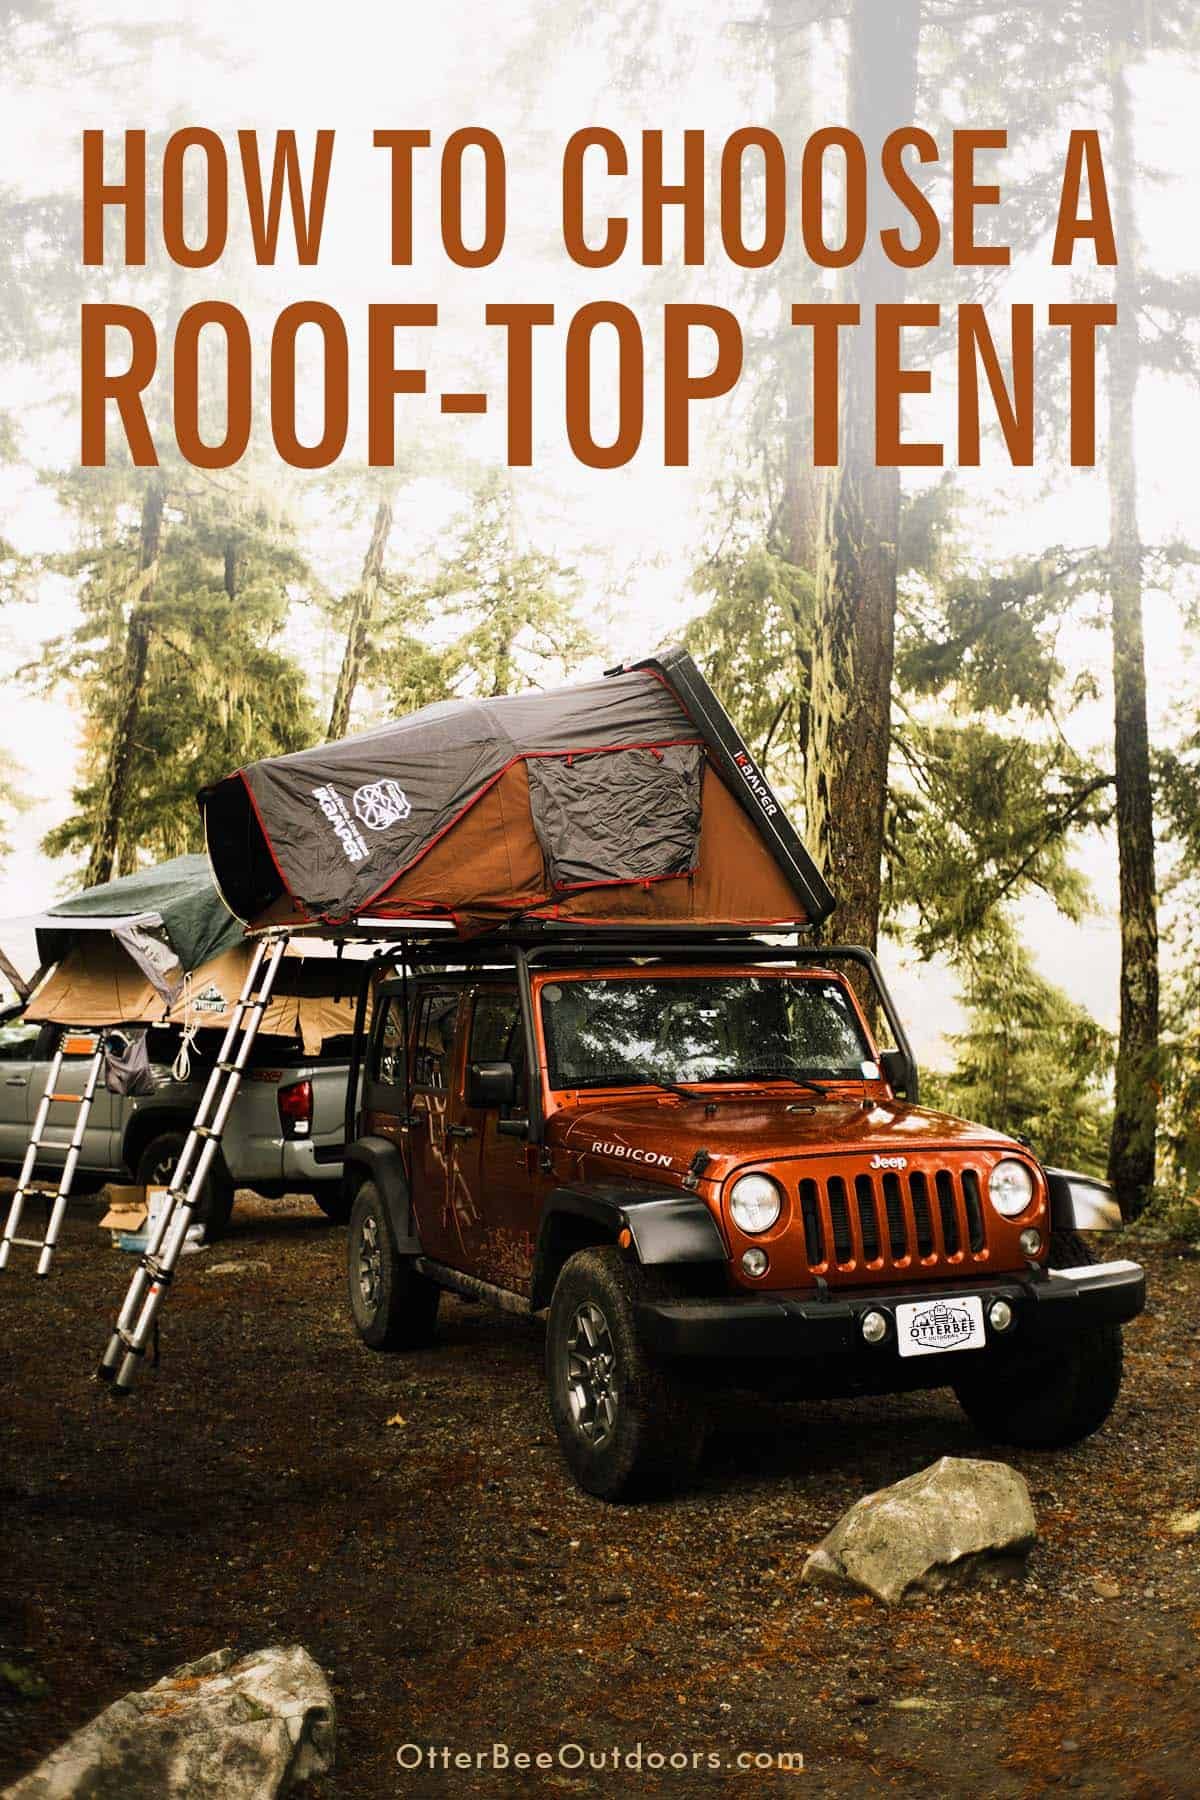 An iKamper hardshell roof-top tent on a Jeep Rubicon and a softshell tent mounted to a truck bed in the the woods on a camping trip. The graphic says, How To Choose A Roof-Top Tent.